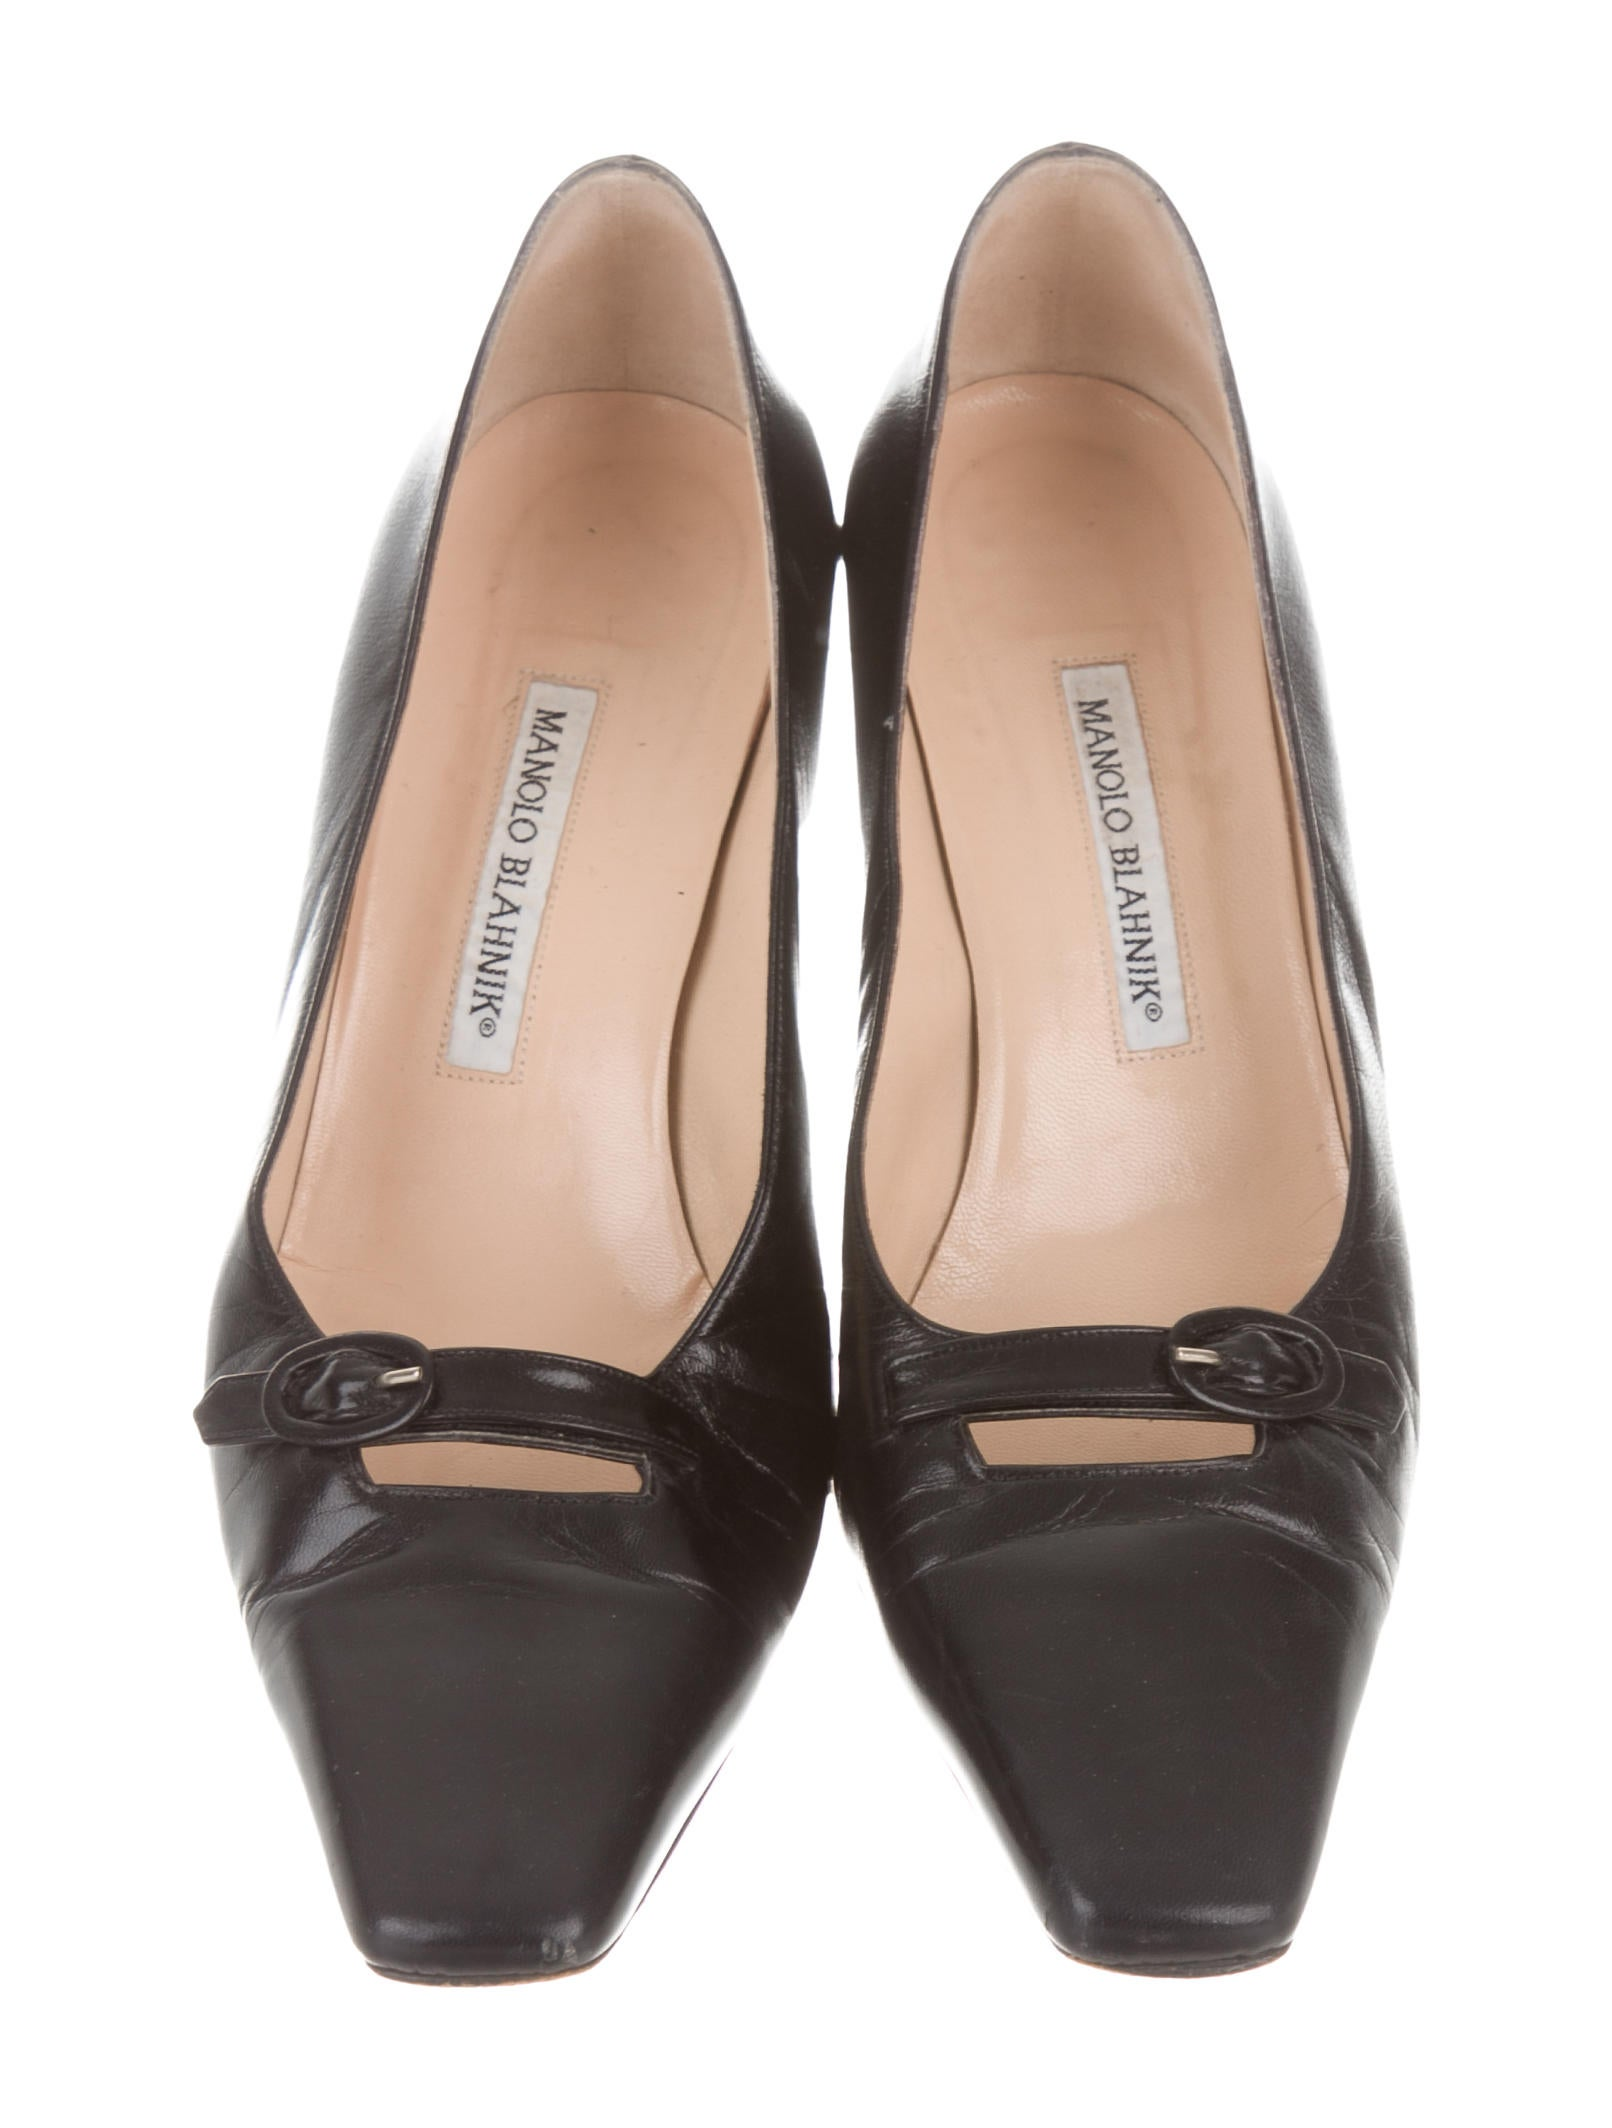 free shipping footaction Manolo Blahnik Leather Round-Toe Oxfords cheap sale in China qEfzOgHcU